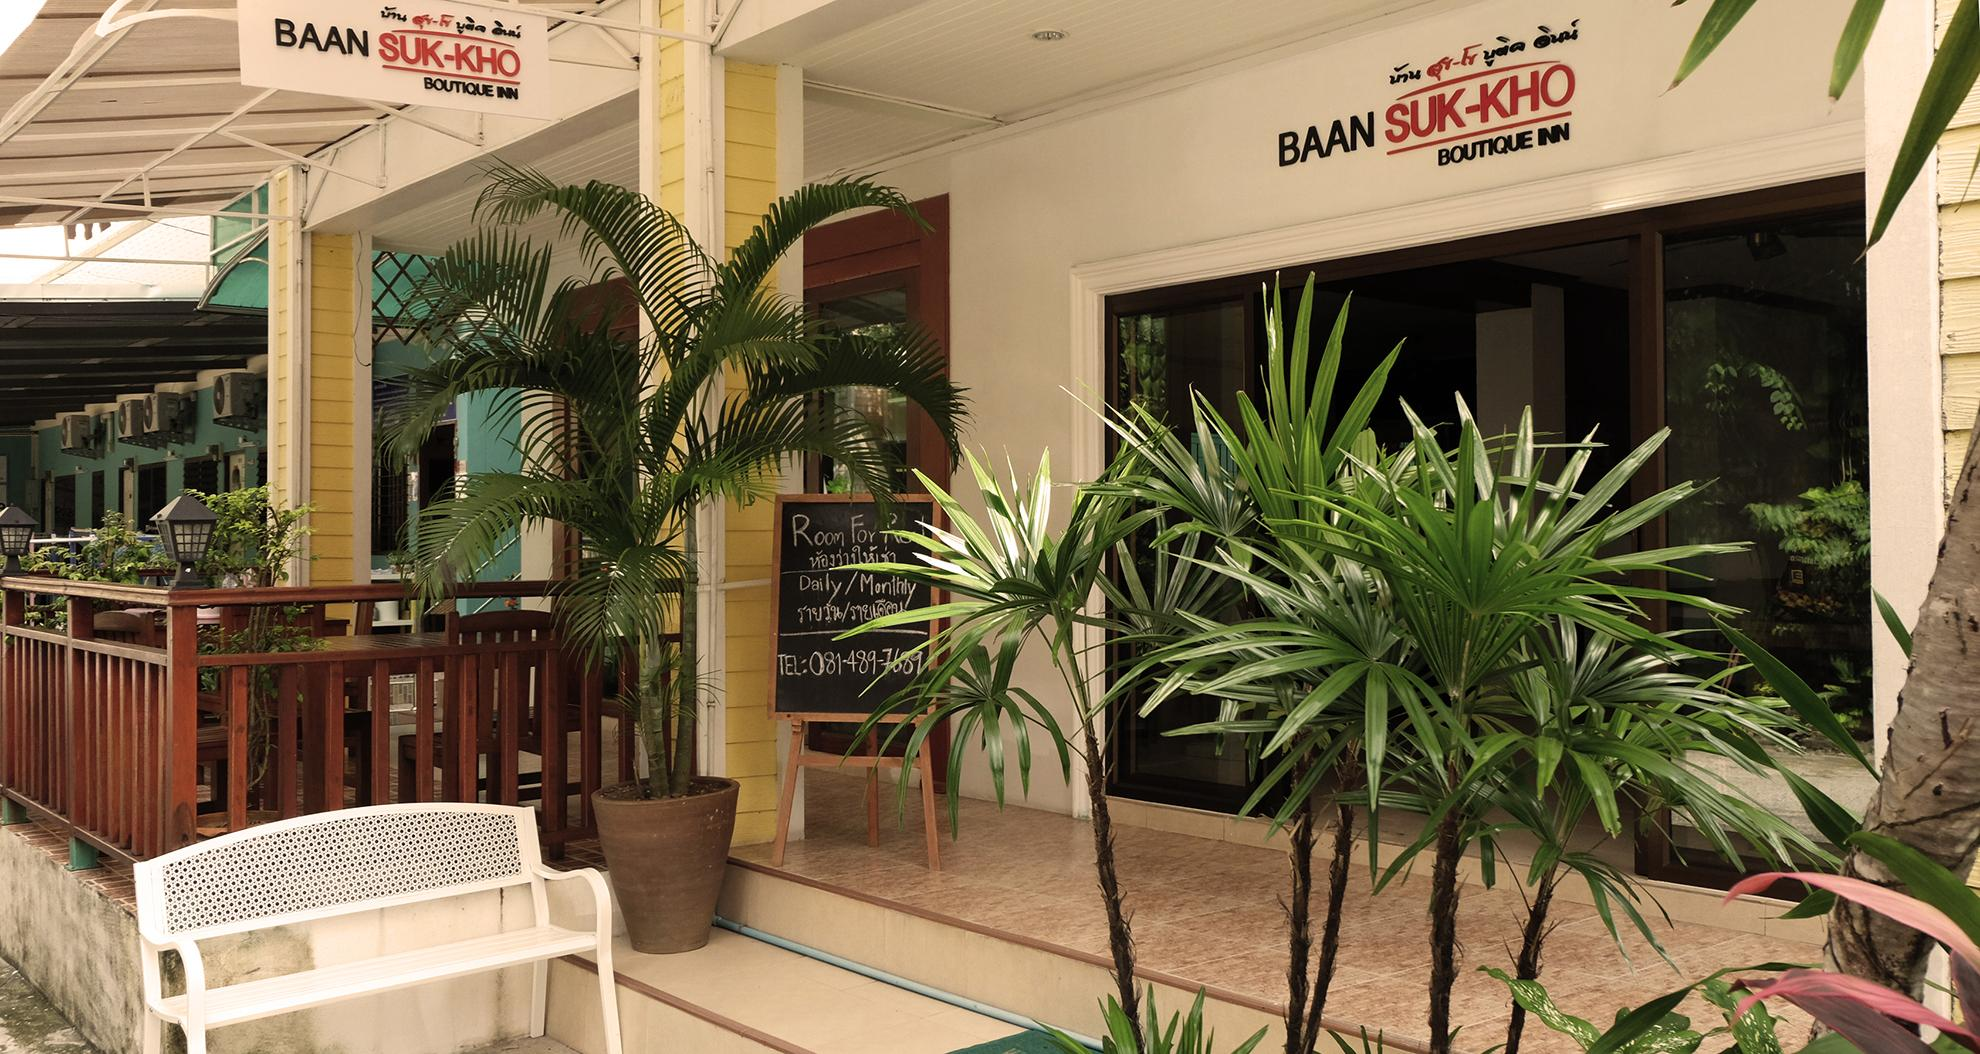 Baan Suk Kho Boutique Inn